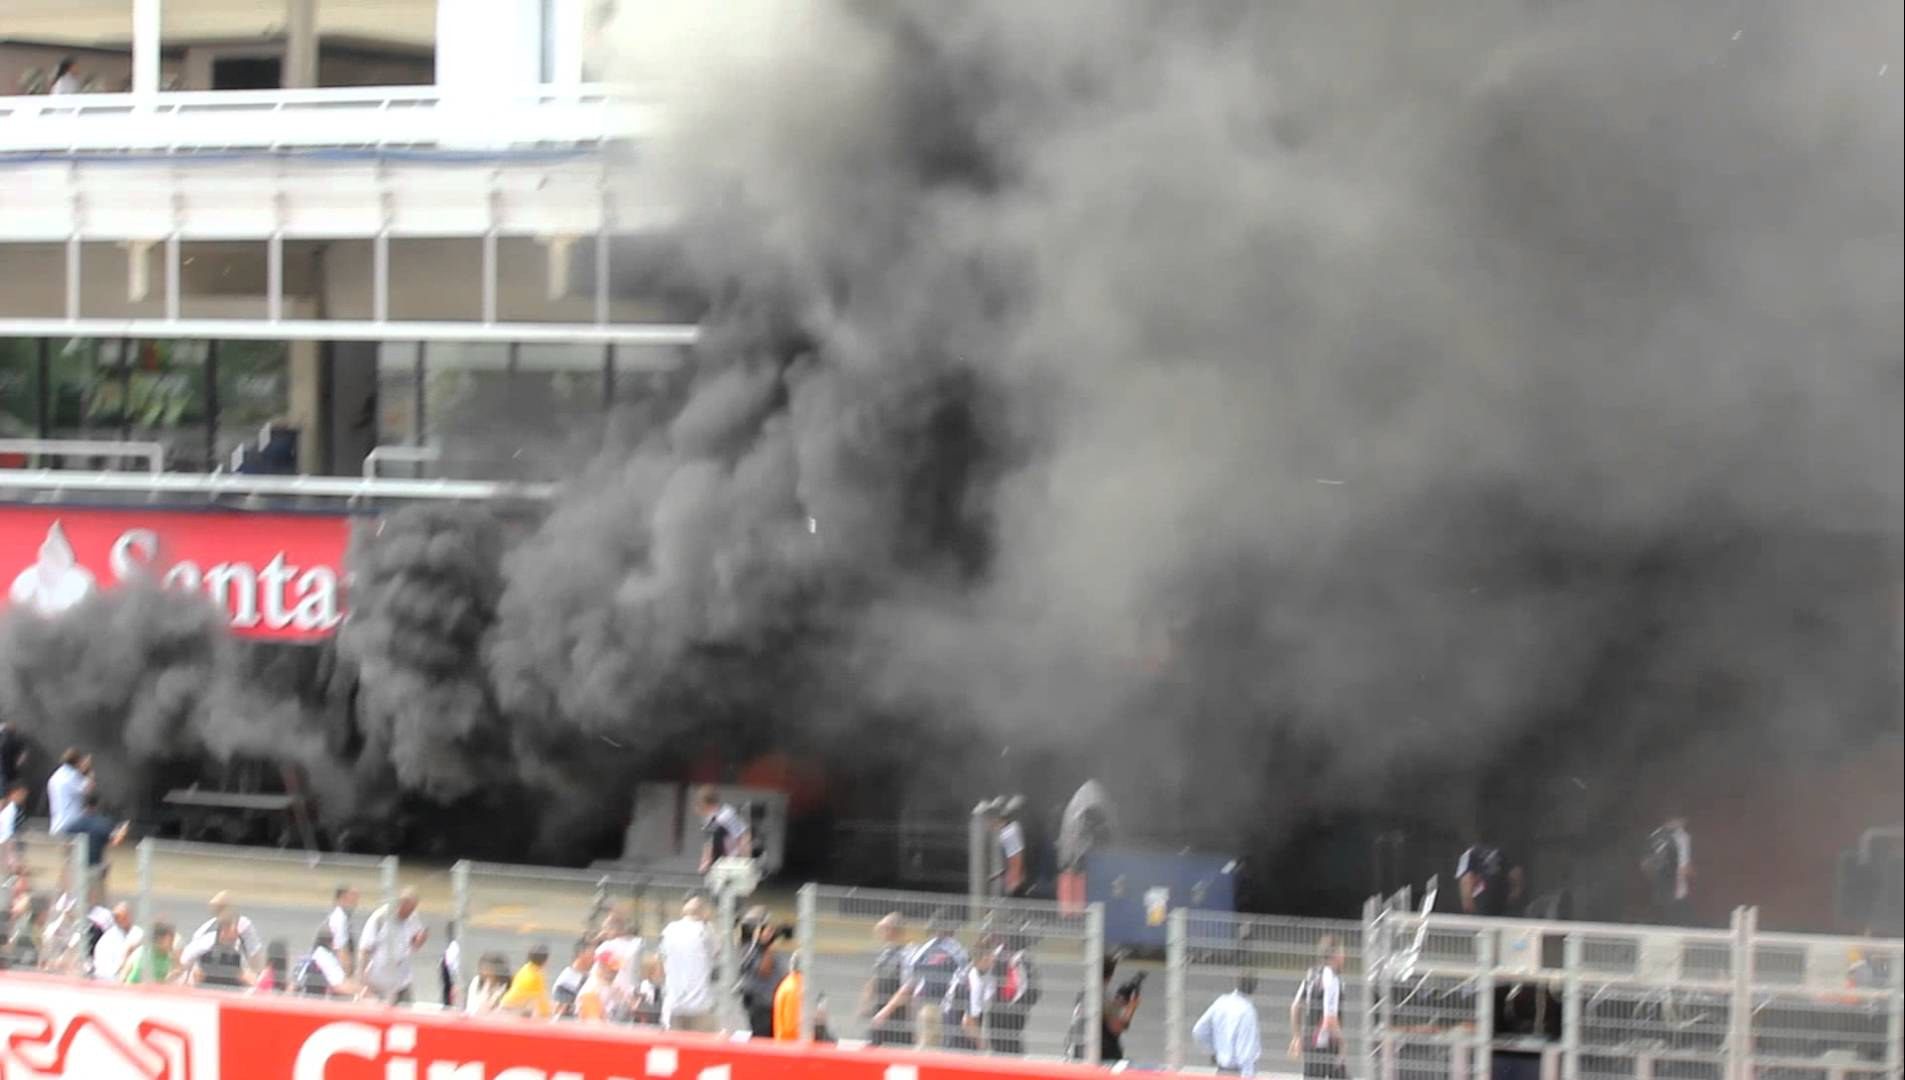 Today's Pit Box Fire At McLaren Reminds Us Of The 2012 Barcelona Fire